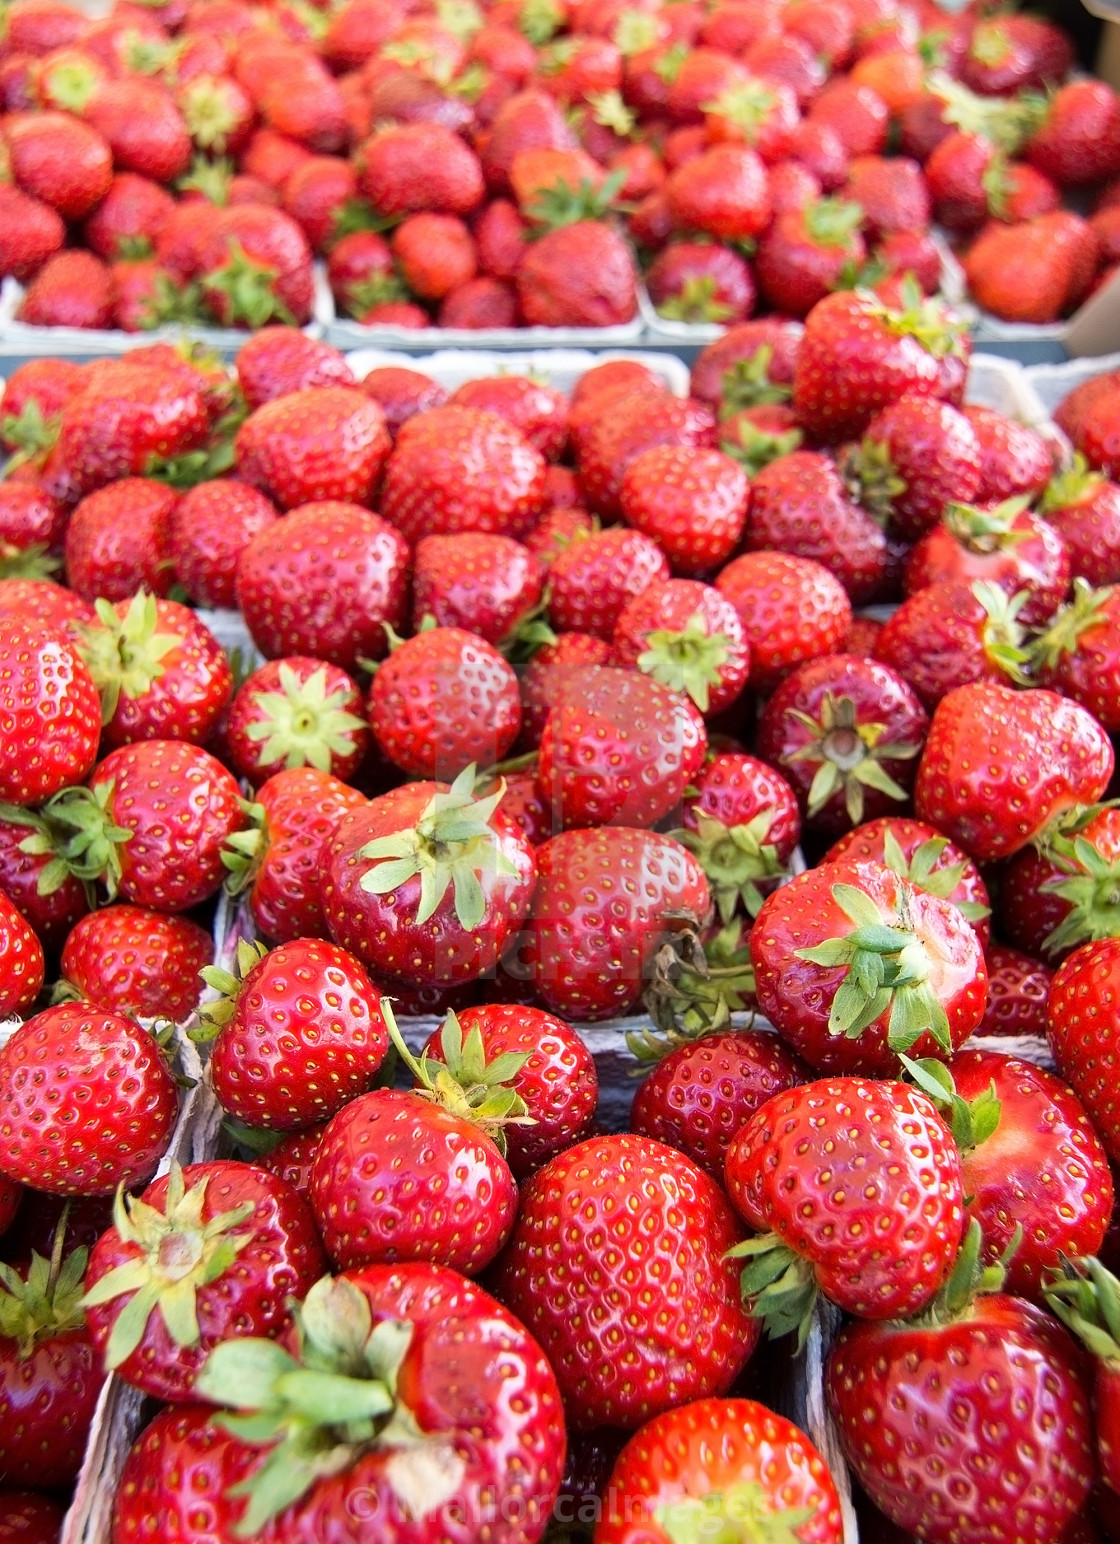 """""""Strawberries for sale"""" stock image"""